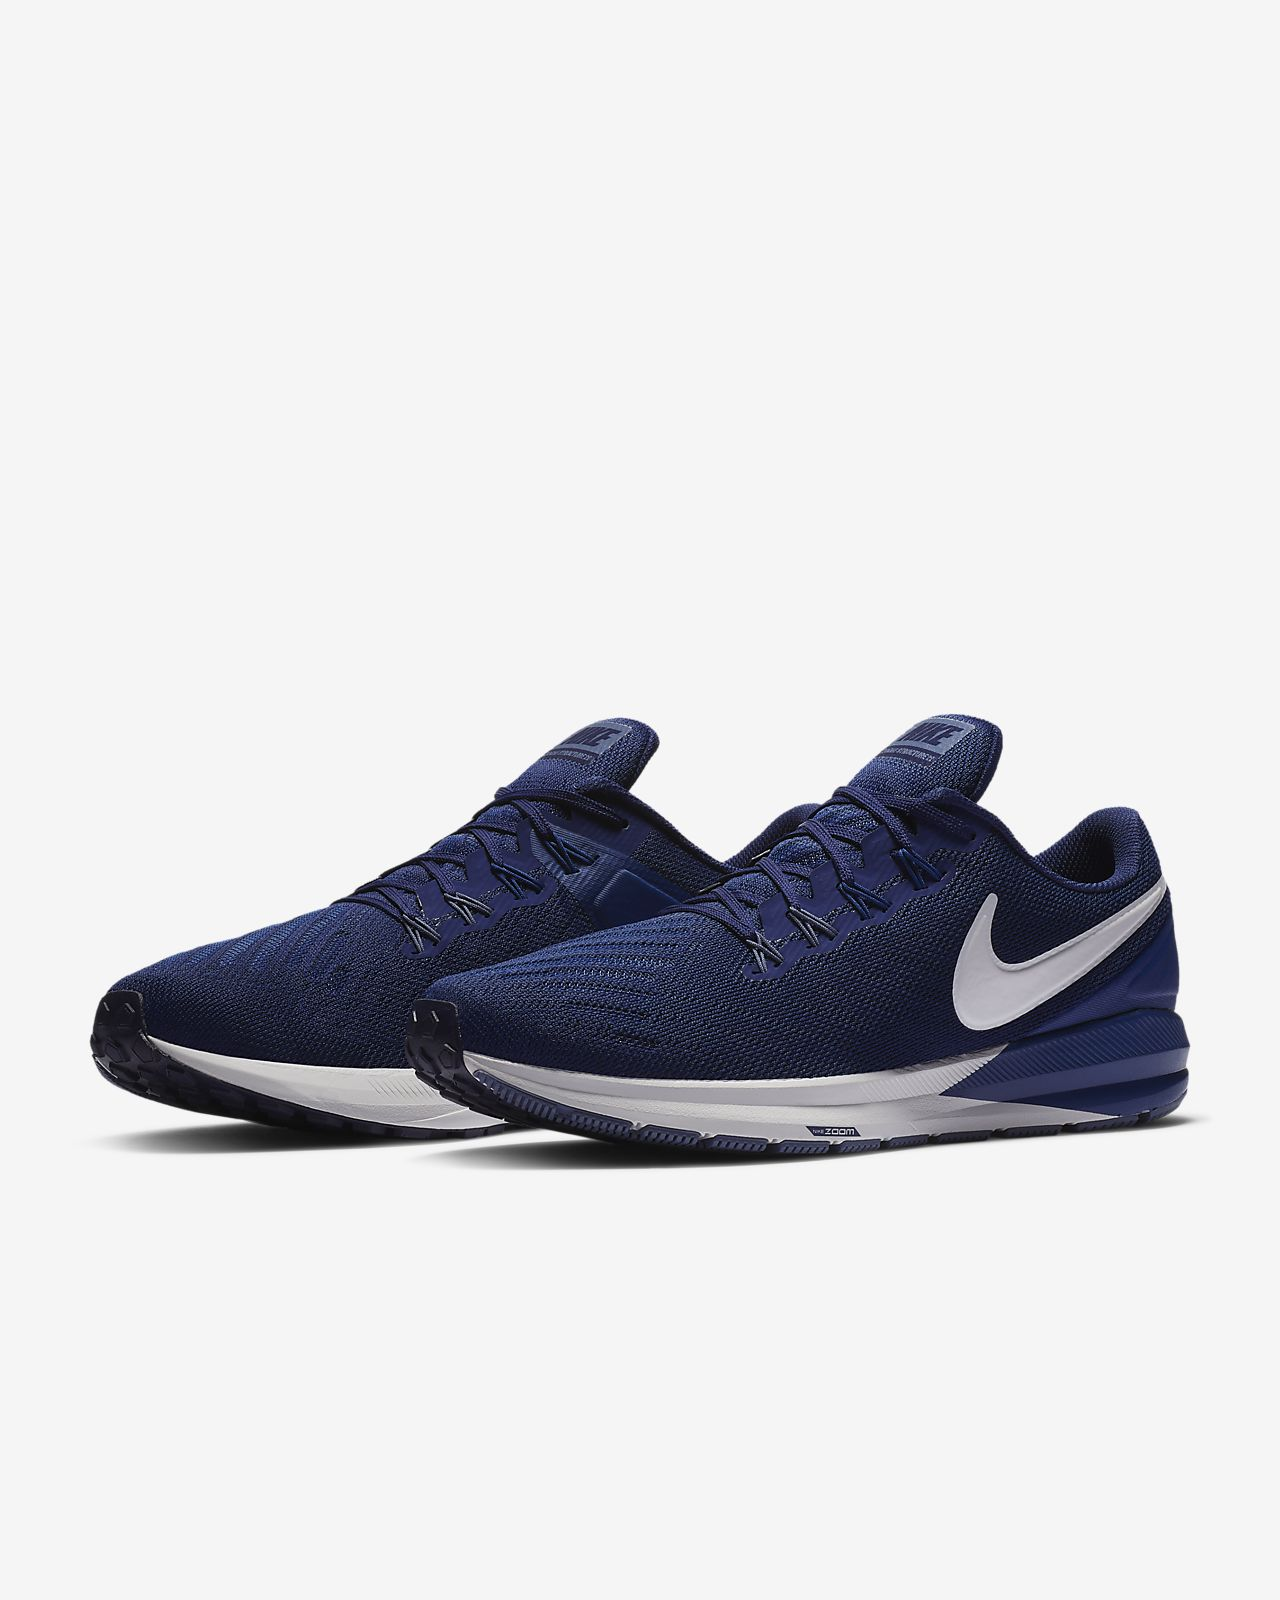 best loved 42a24 cebb3 ... Nike Air Zoom Structure 22 Men s Running Shoe